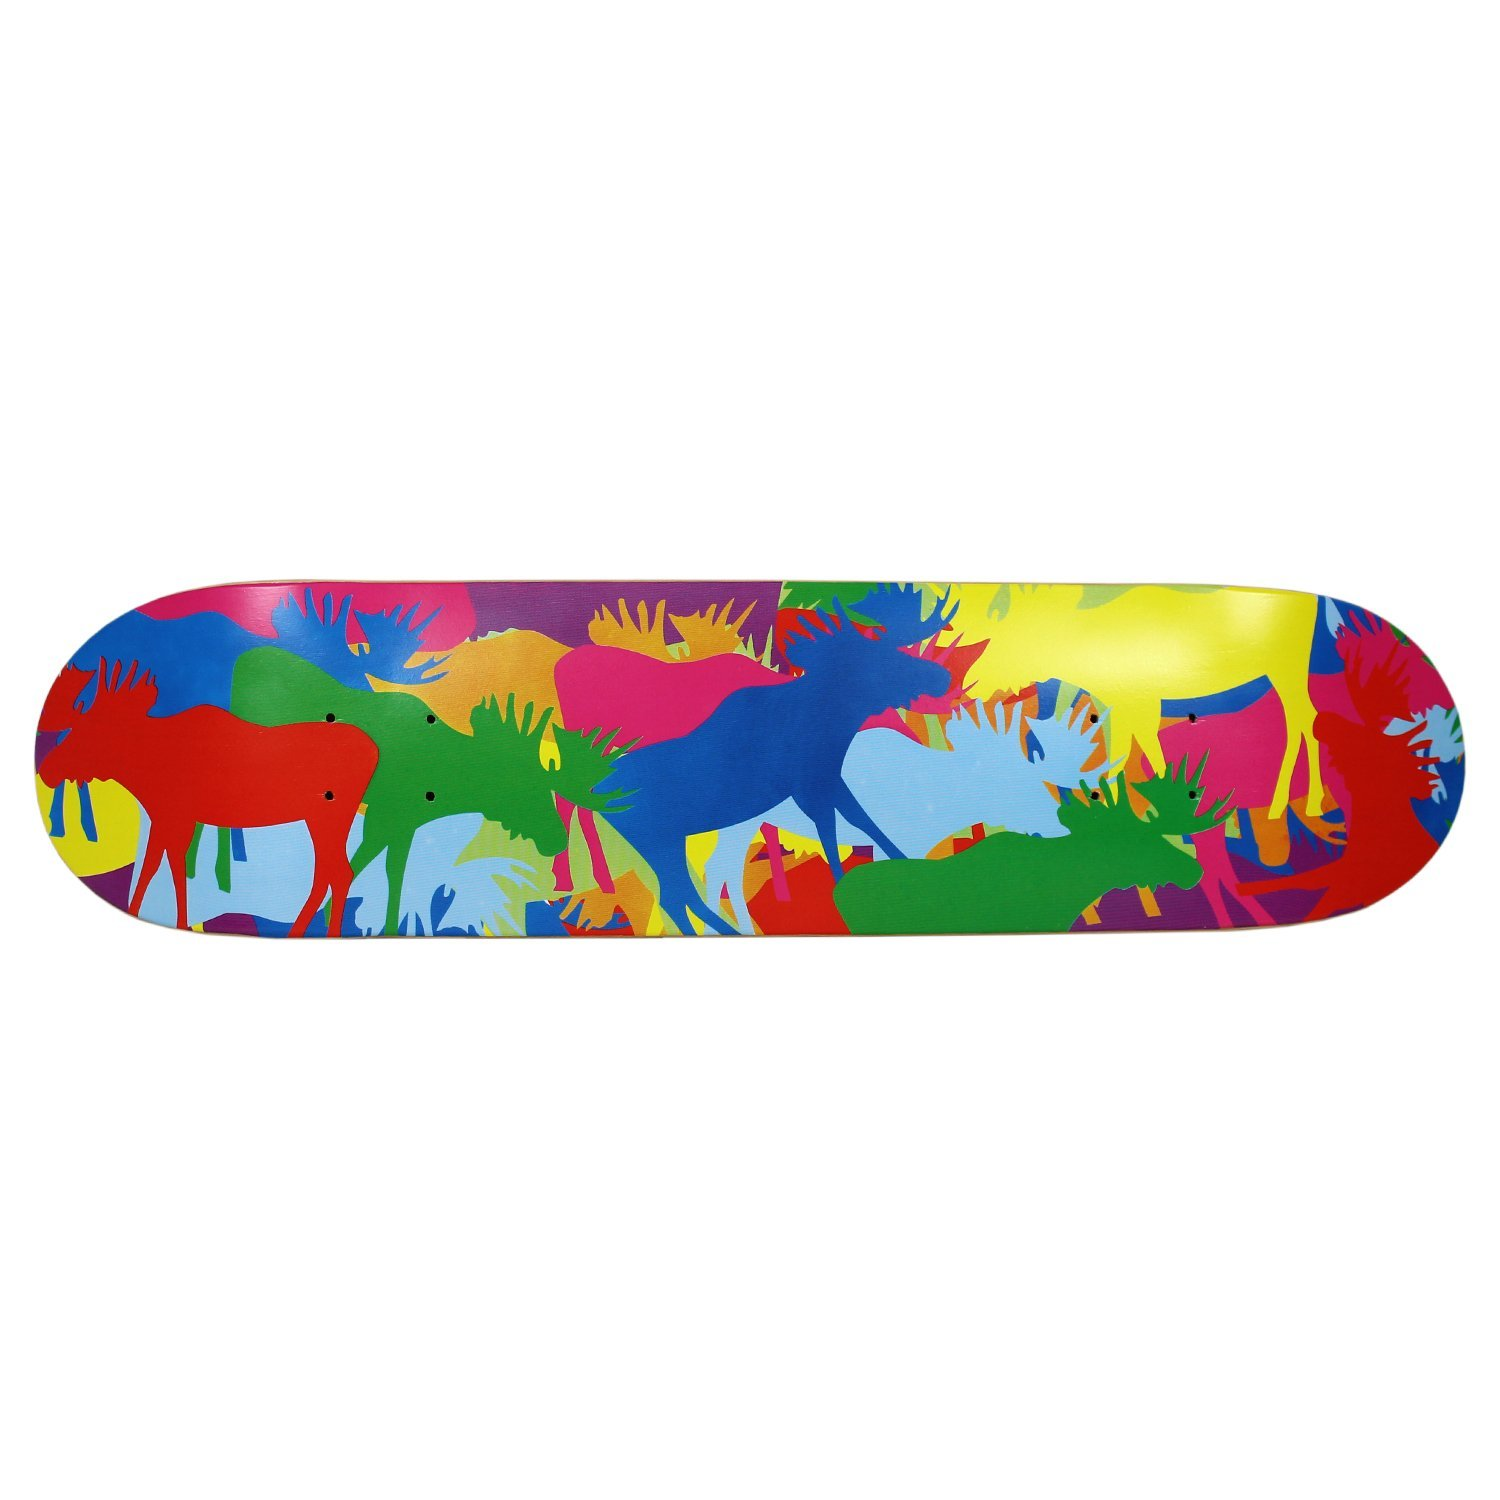 Moose Allover Deck 7.5 Keystone Skate Supply DMG-ALL